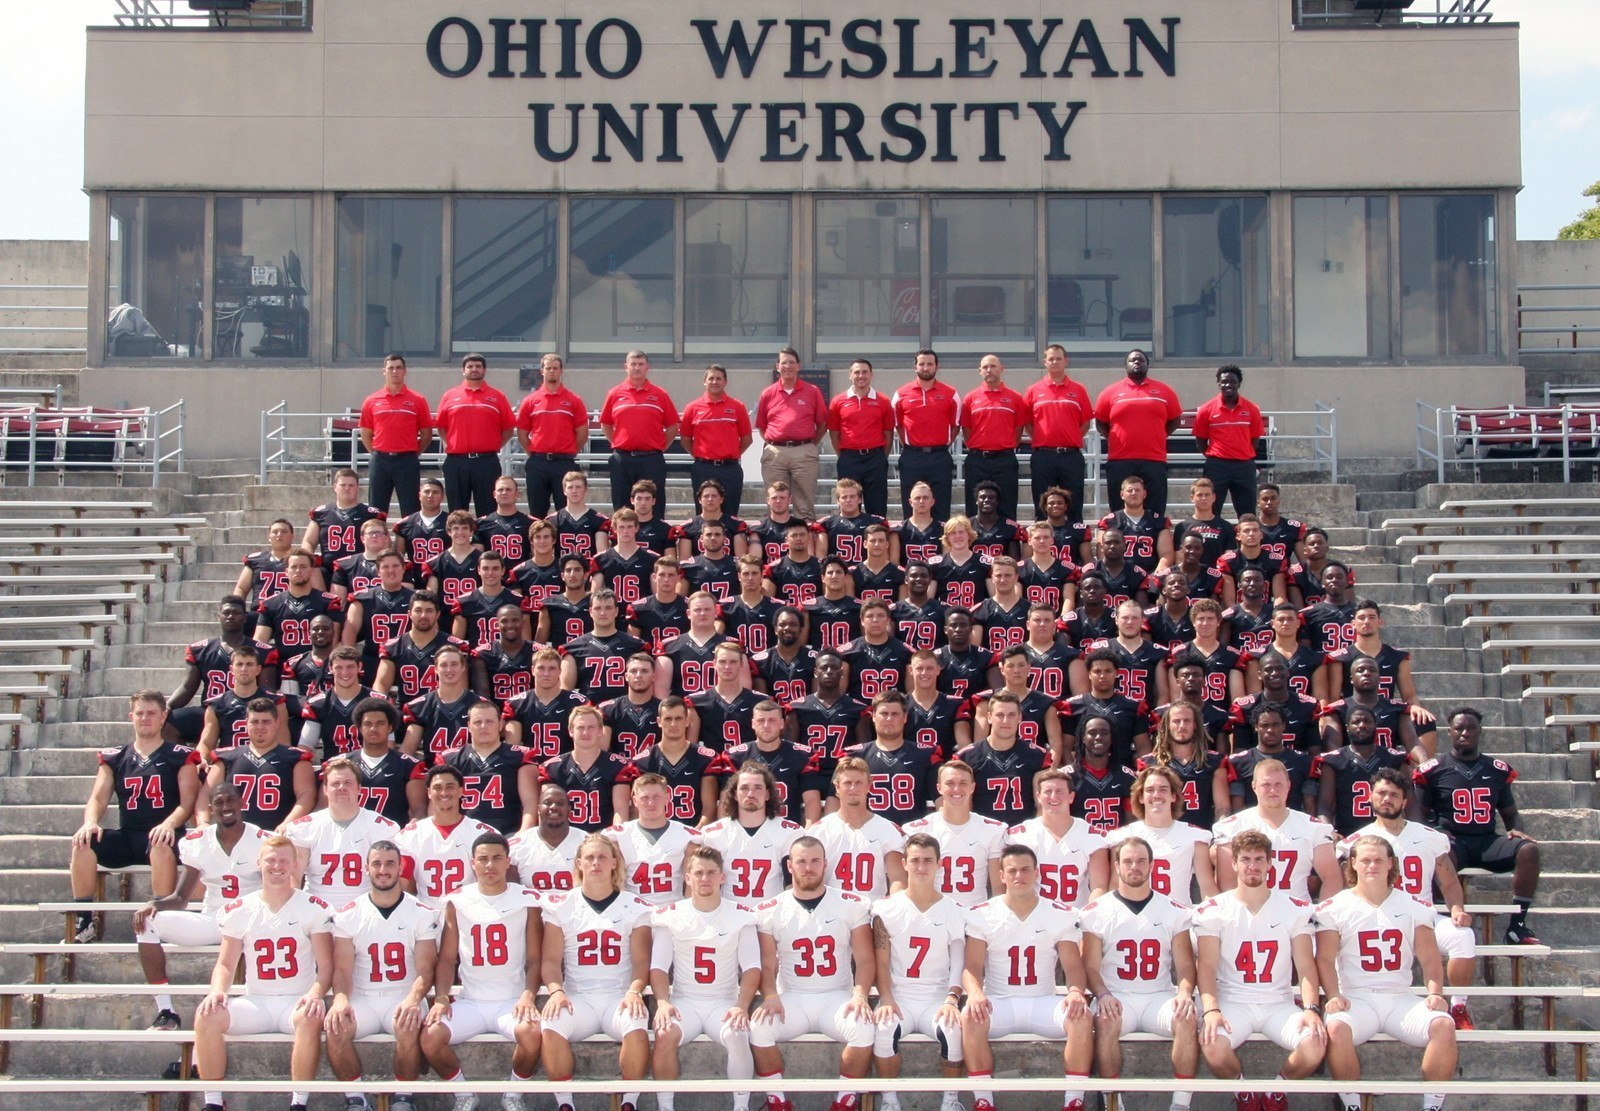 2016 0 Roster Ohio Wesleyan University Athletics